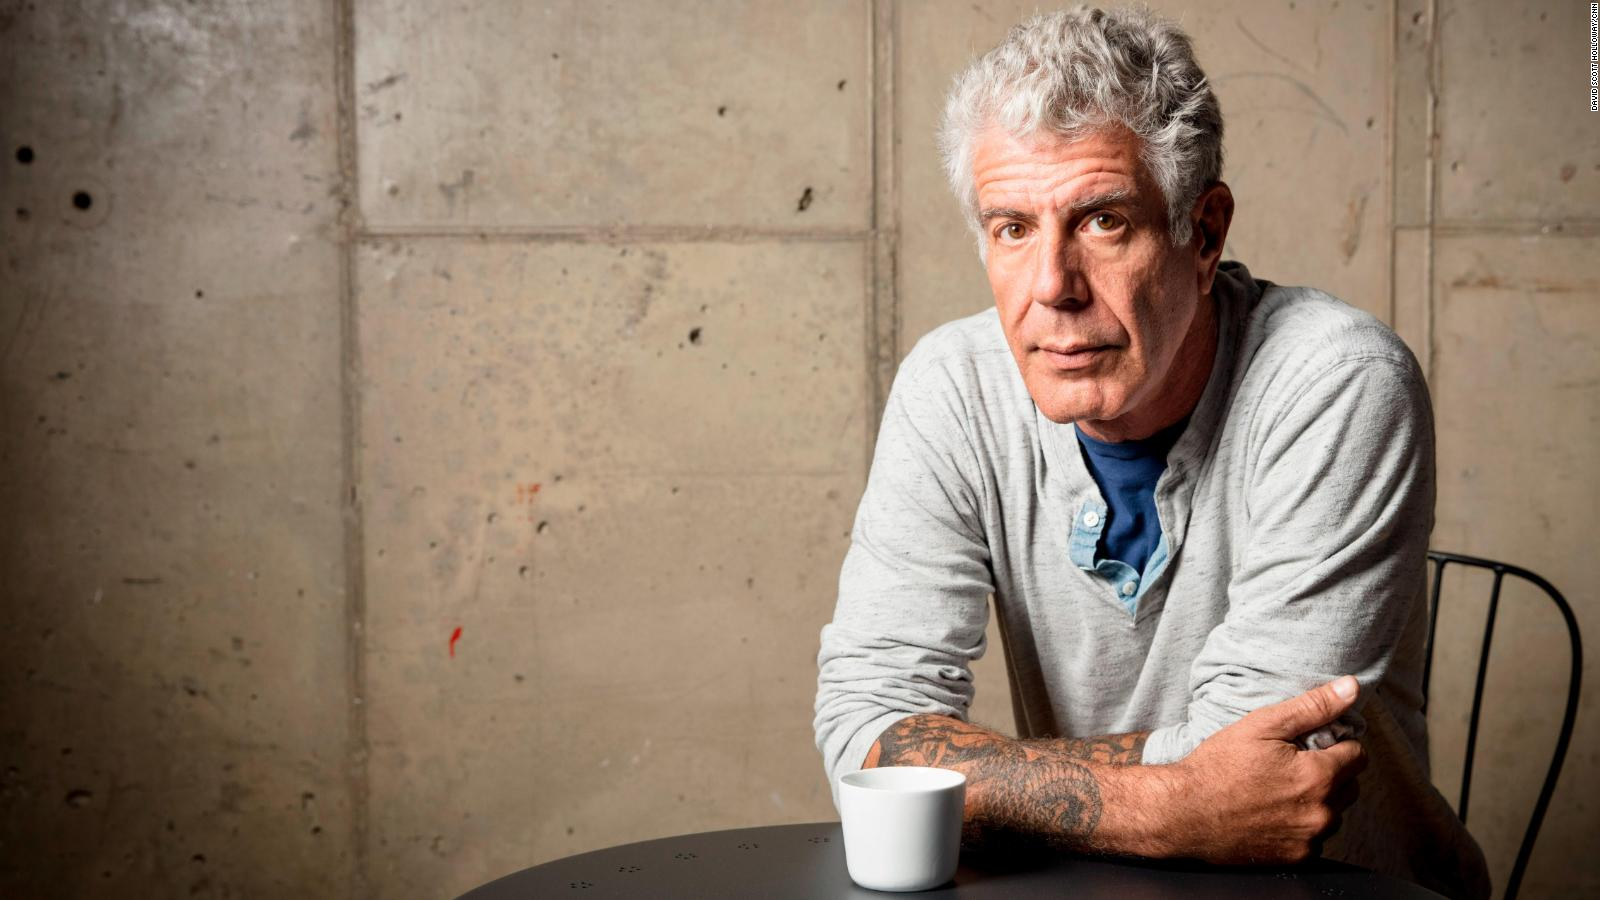 El regalo de Anthony Bourdain